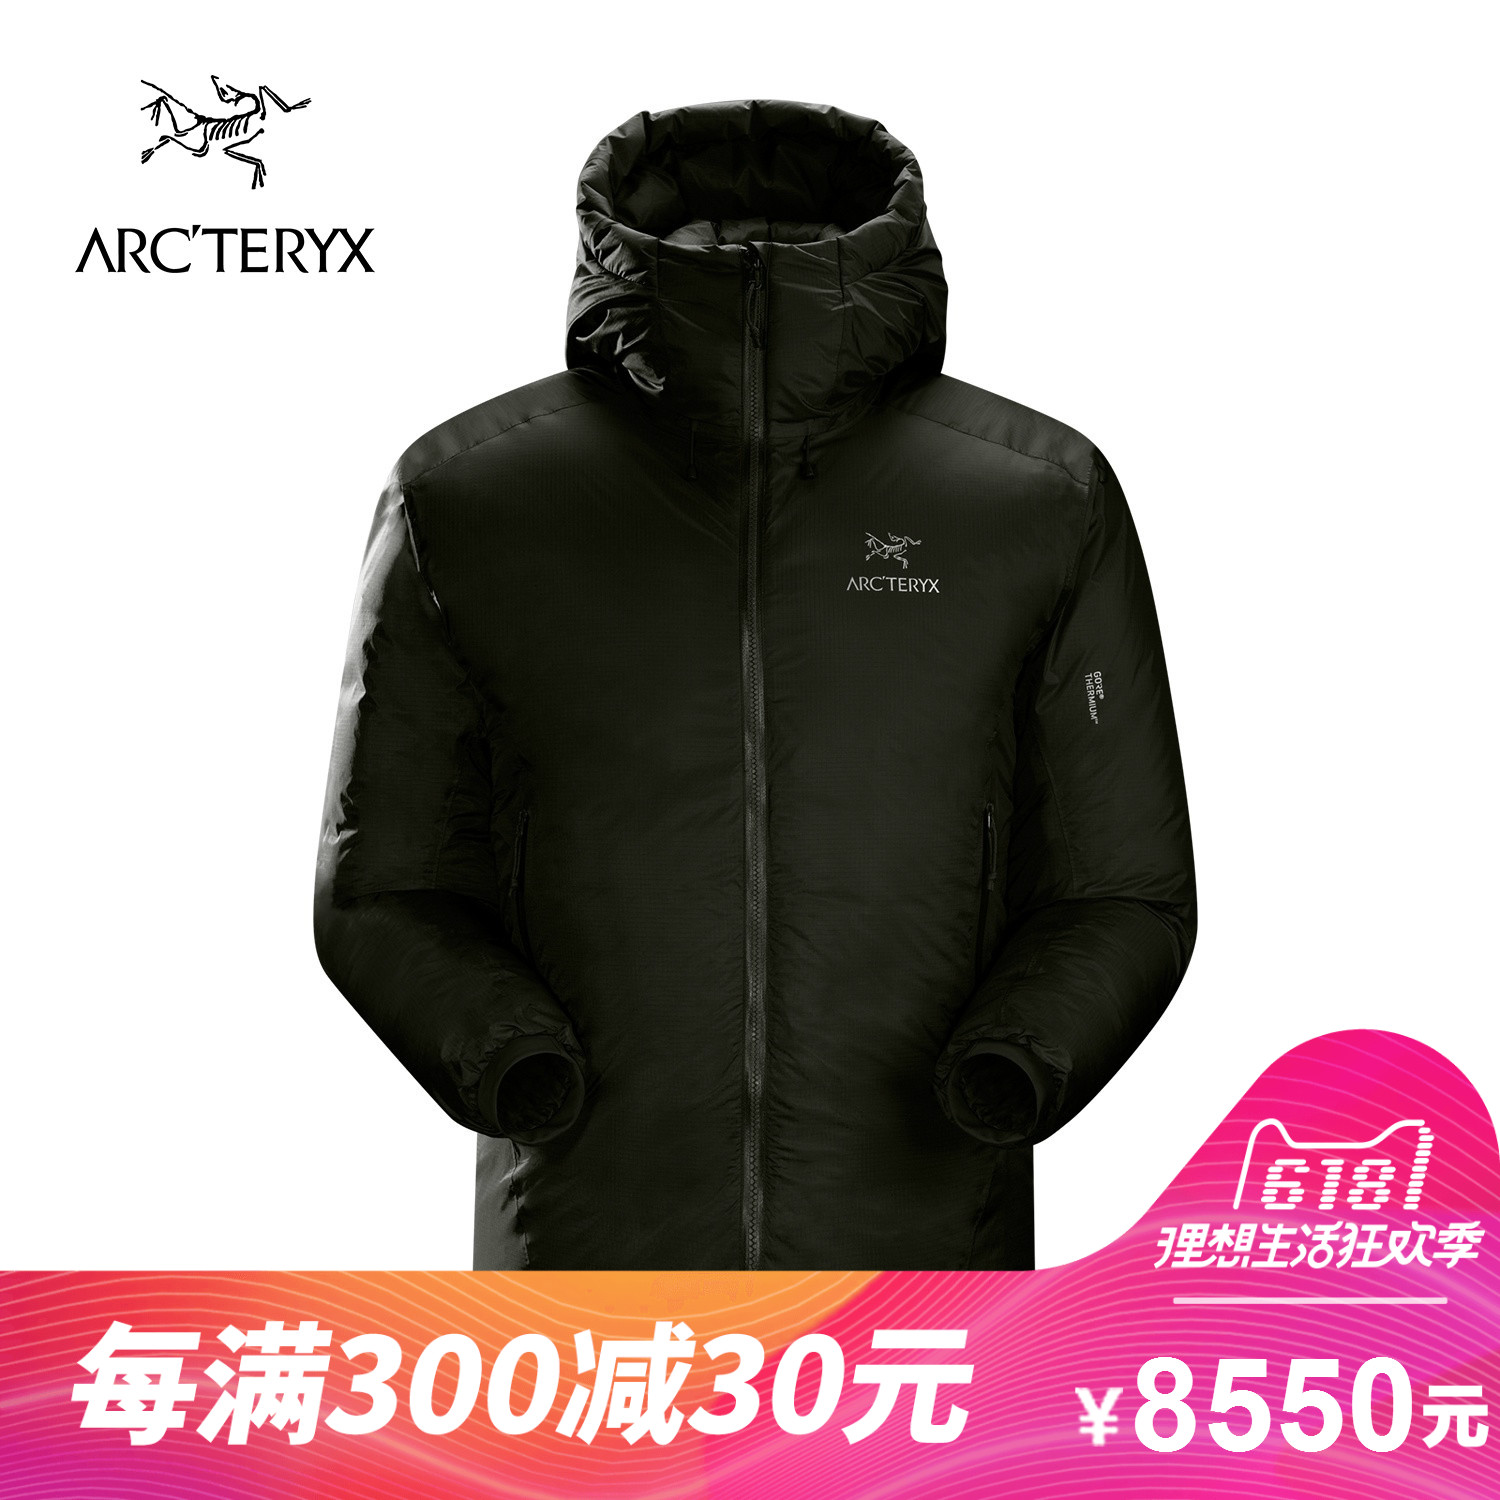 ARCTERYX / Archaeopteryx Men's Lightweight Warm Ski Hooded Down Jacket Firebee AR 18016